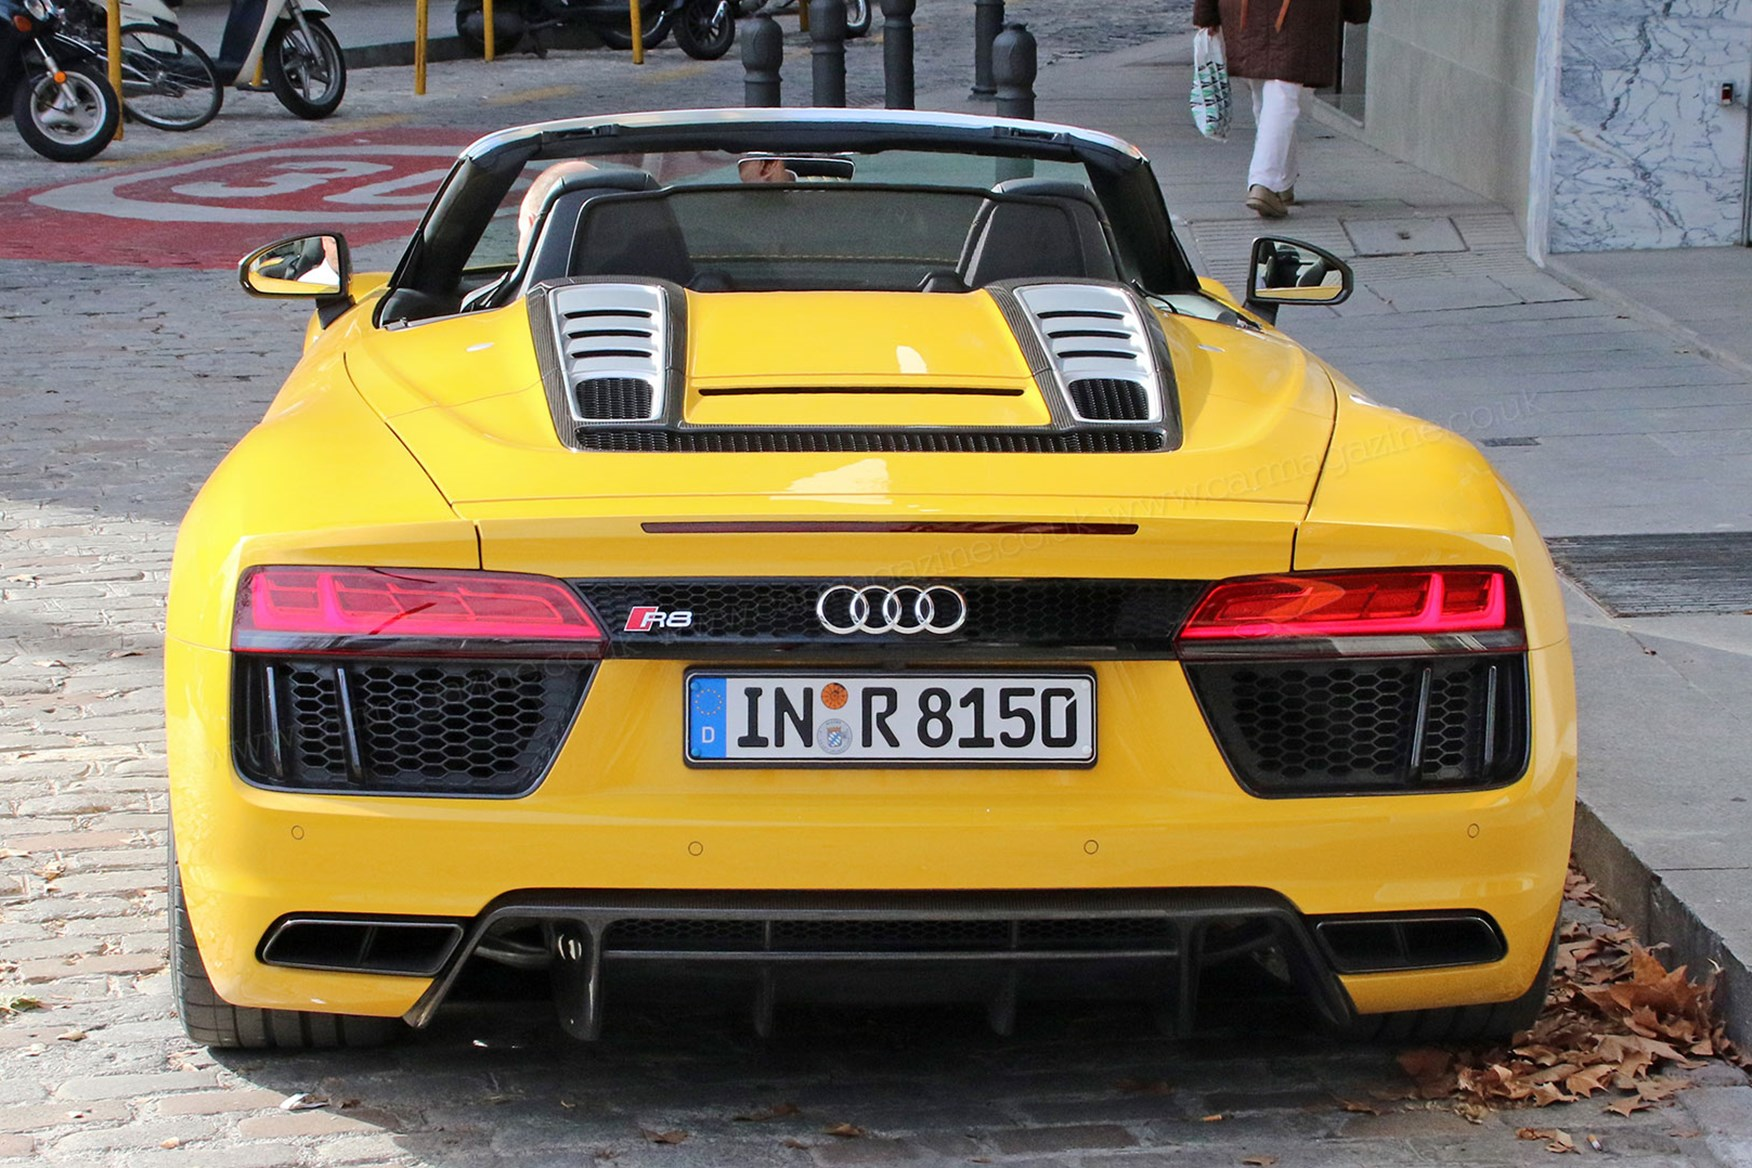 ... Audi R8 Spyder Rear Deck Lifts To Swallow Canvas Roof ...